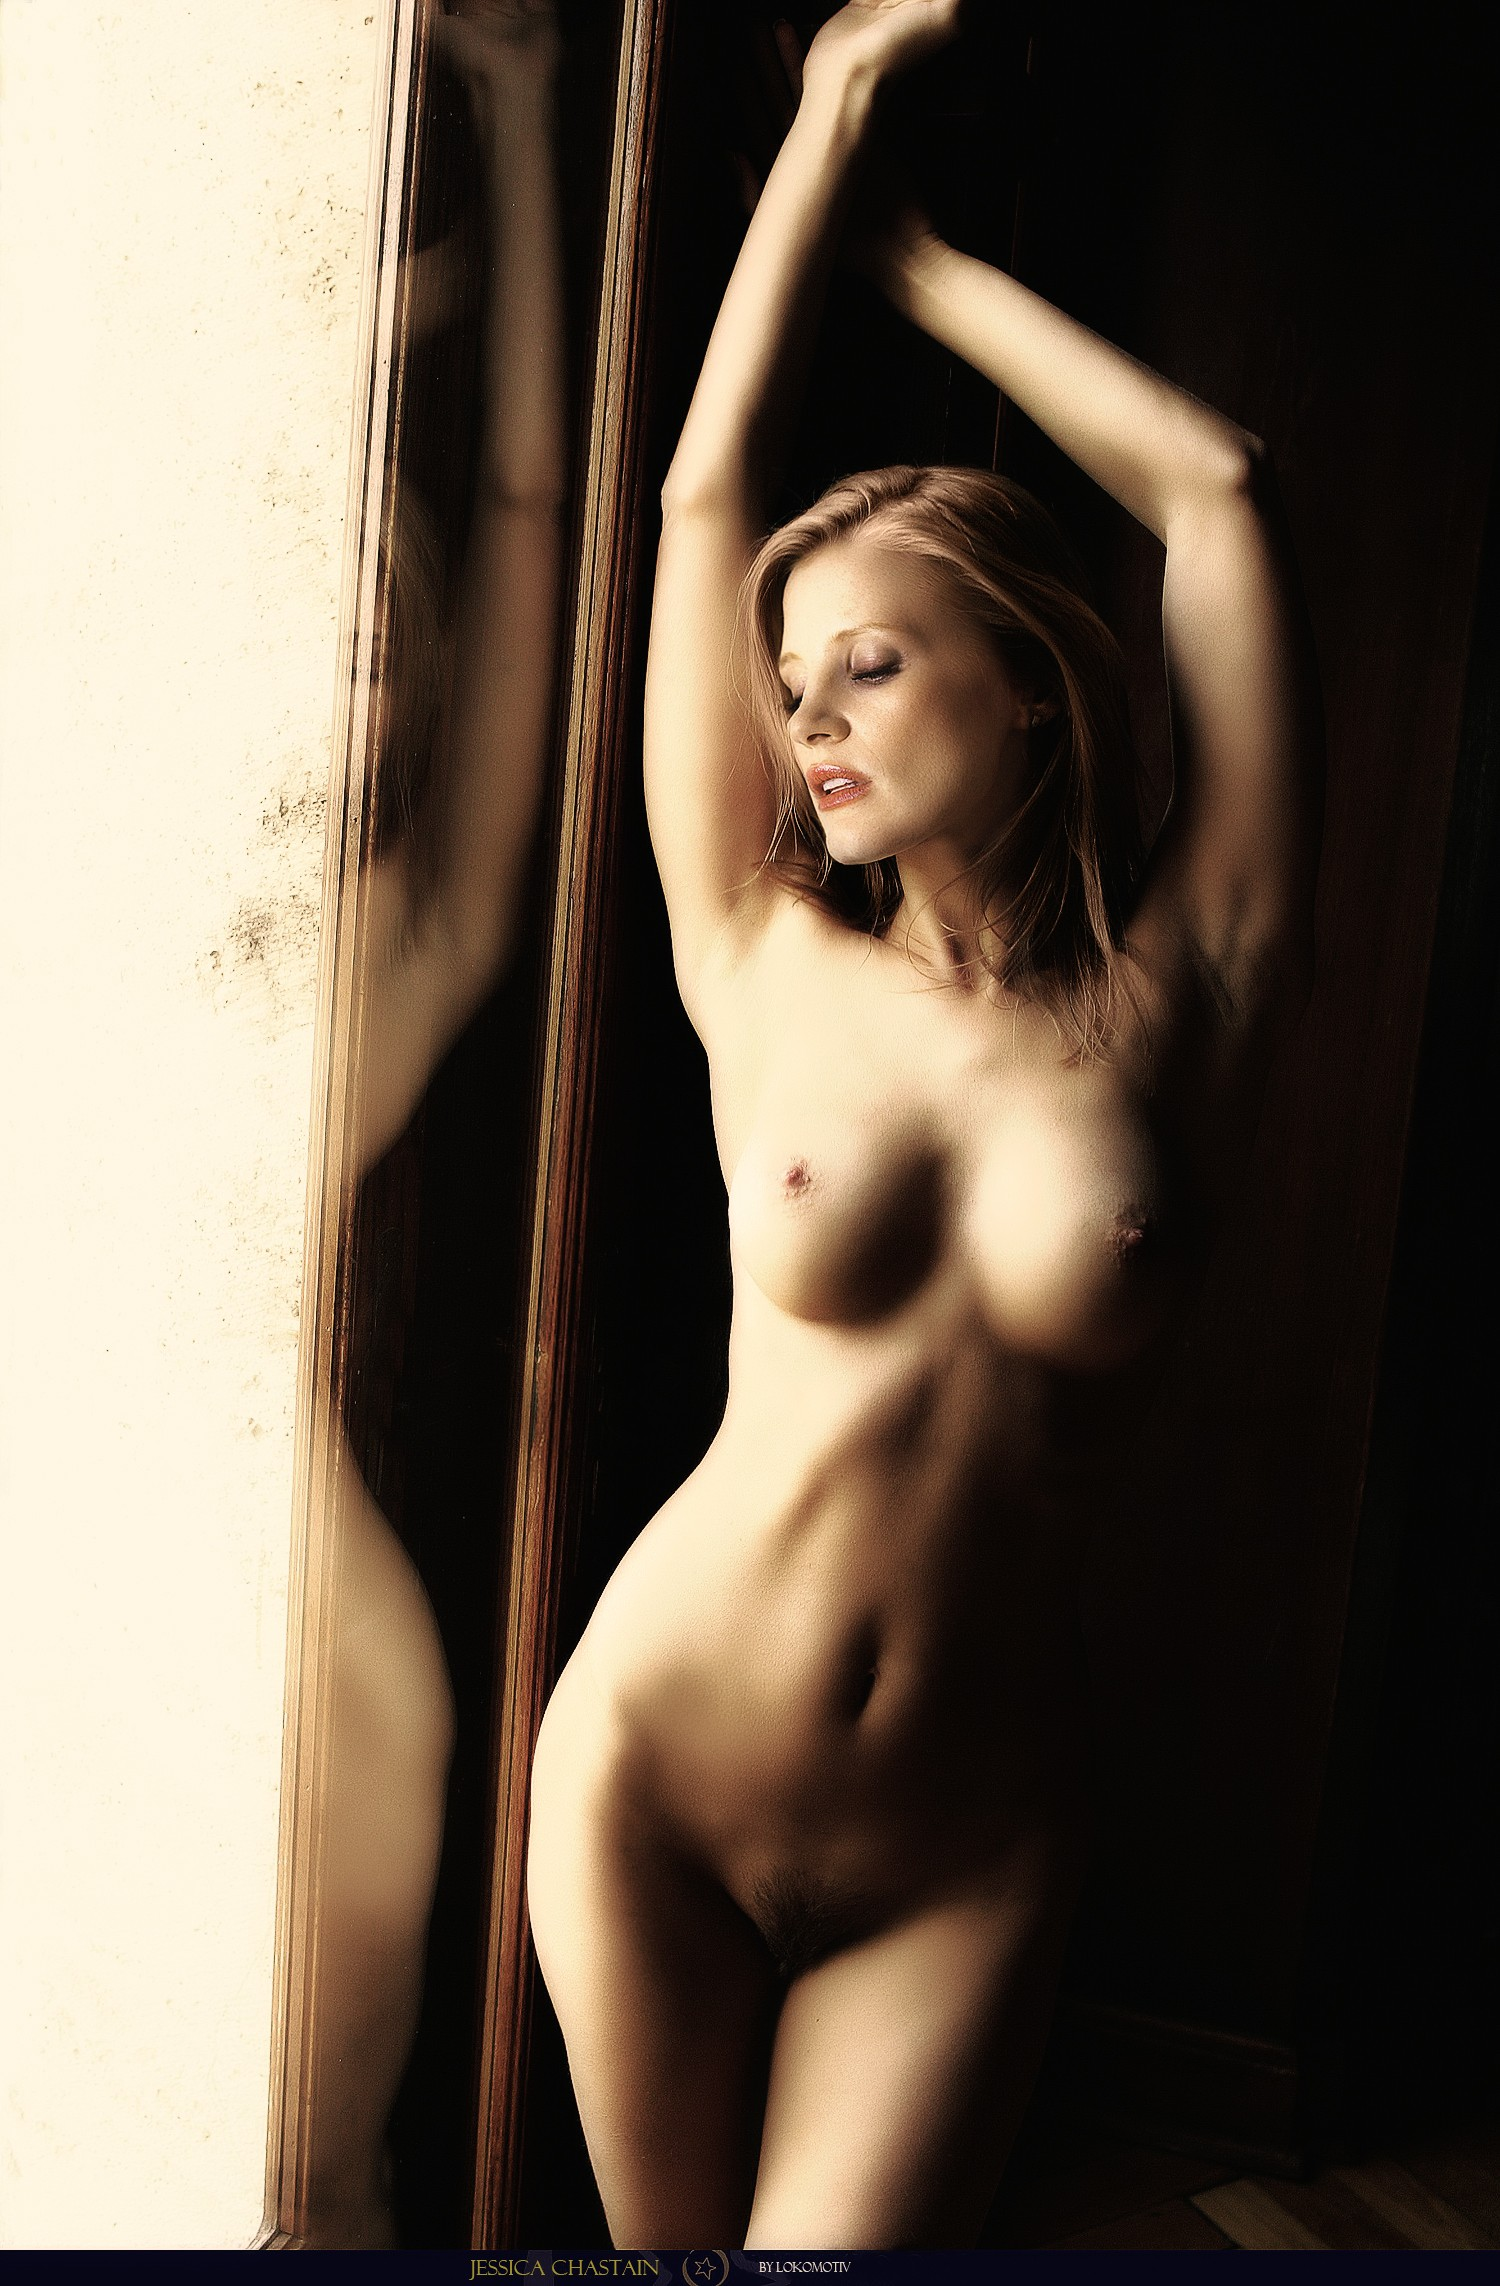 Jessica Chastain Nude Images photo 10